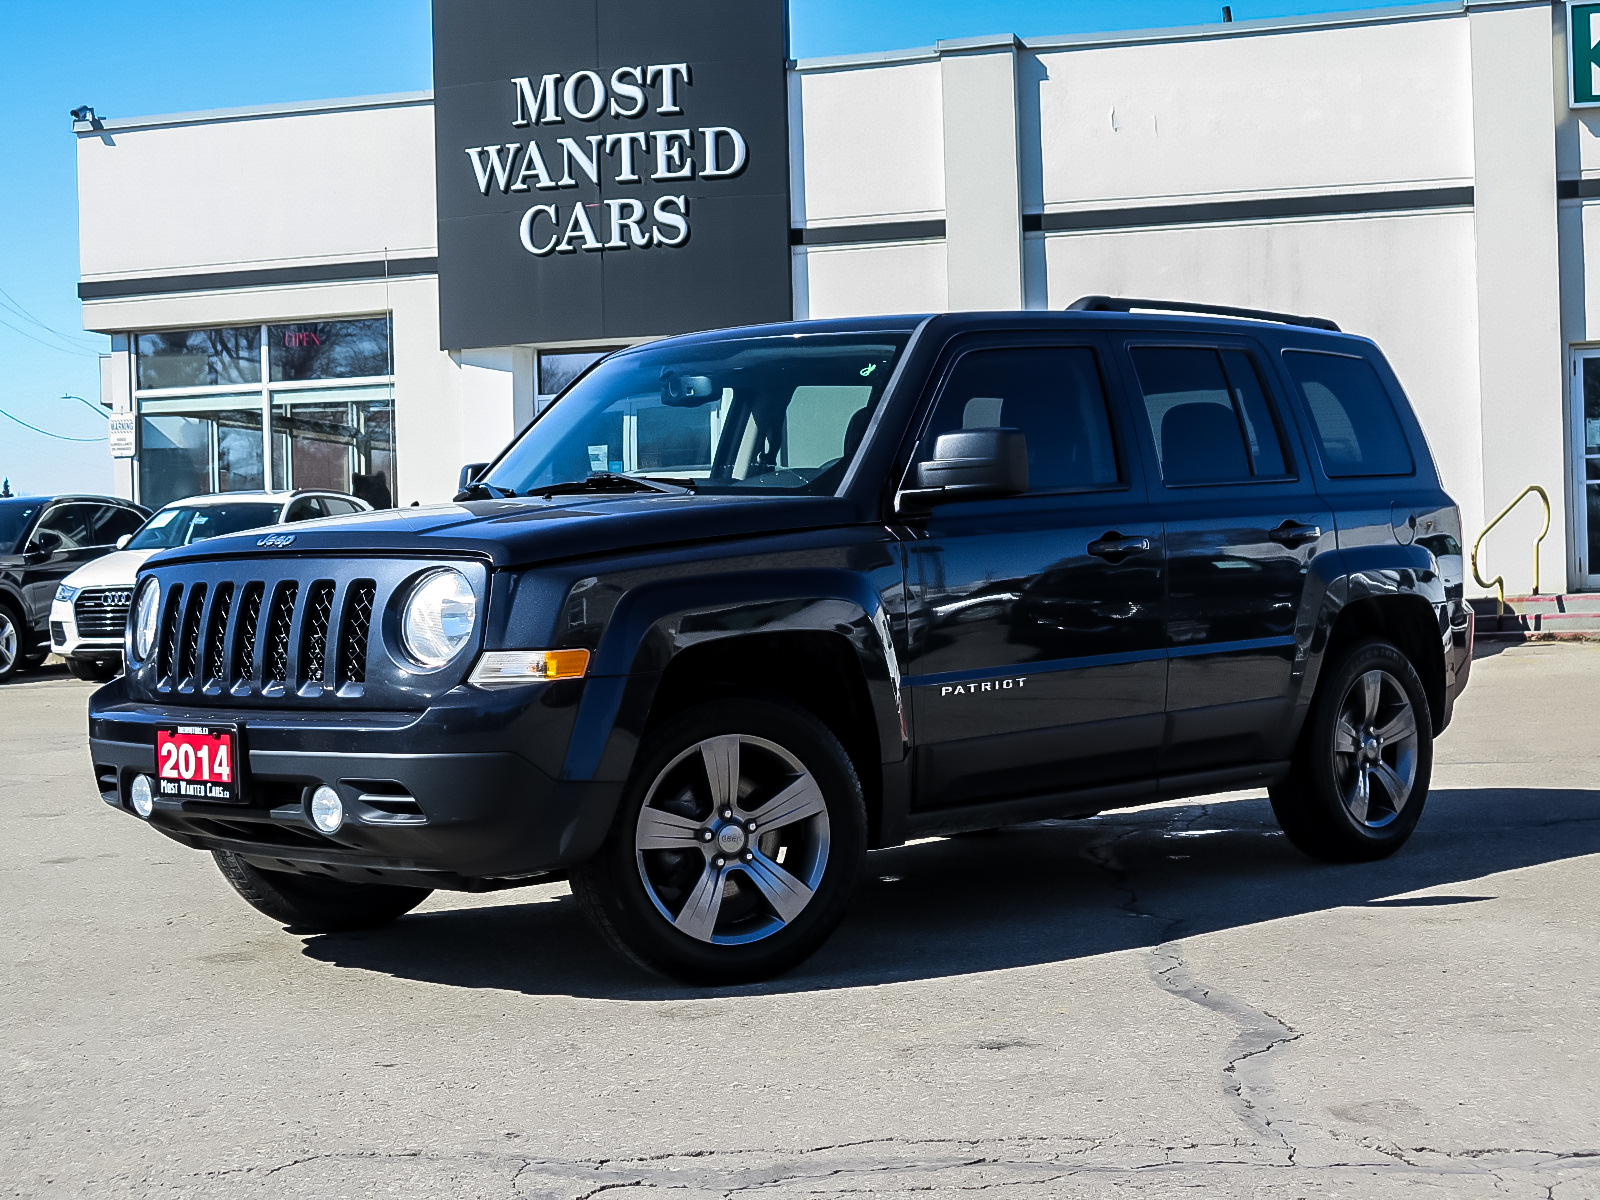 used 2014 Jeep Patriot car, priced at $6,792